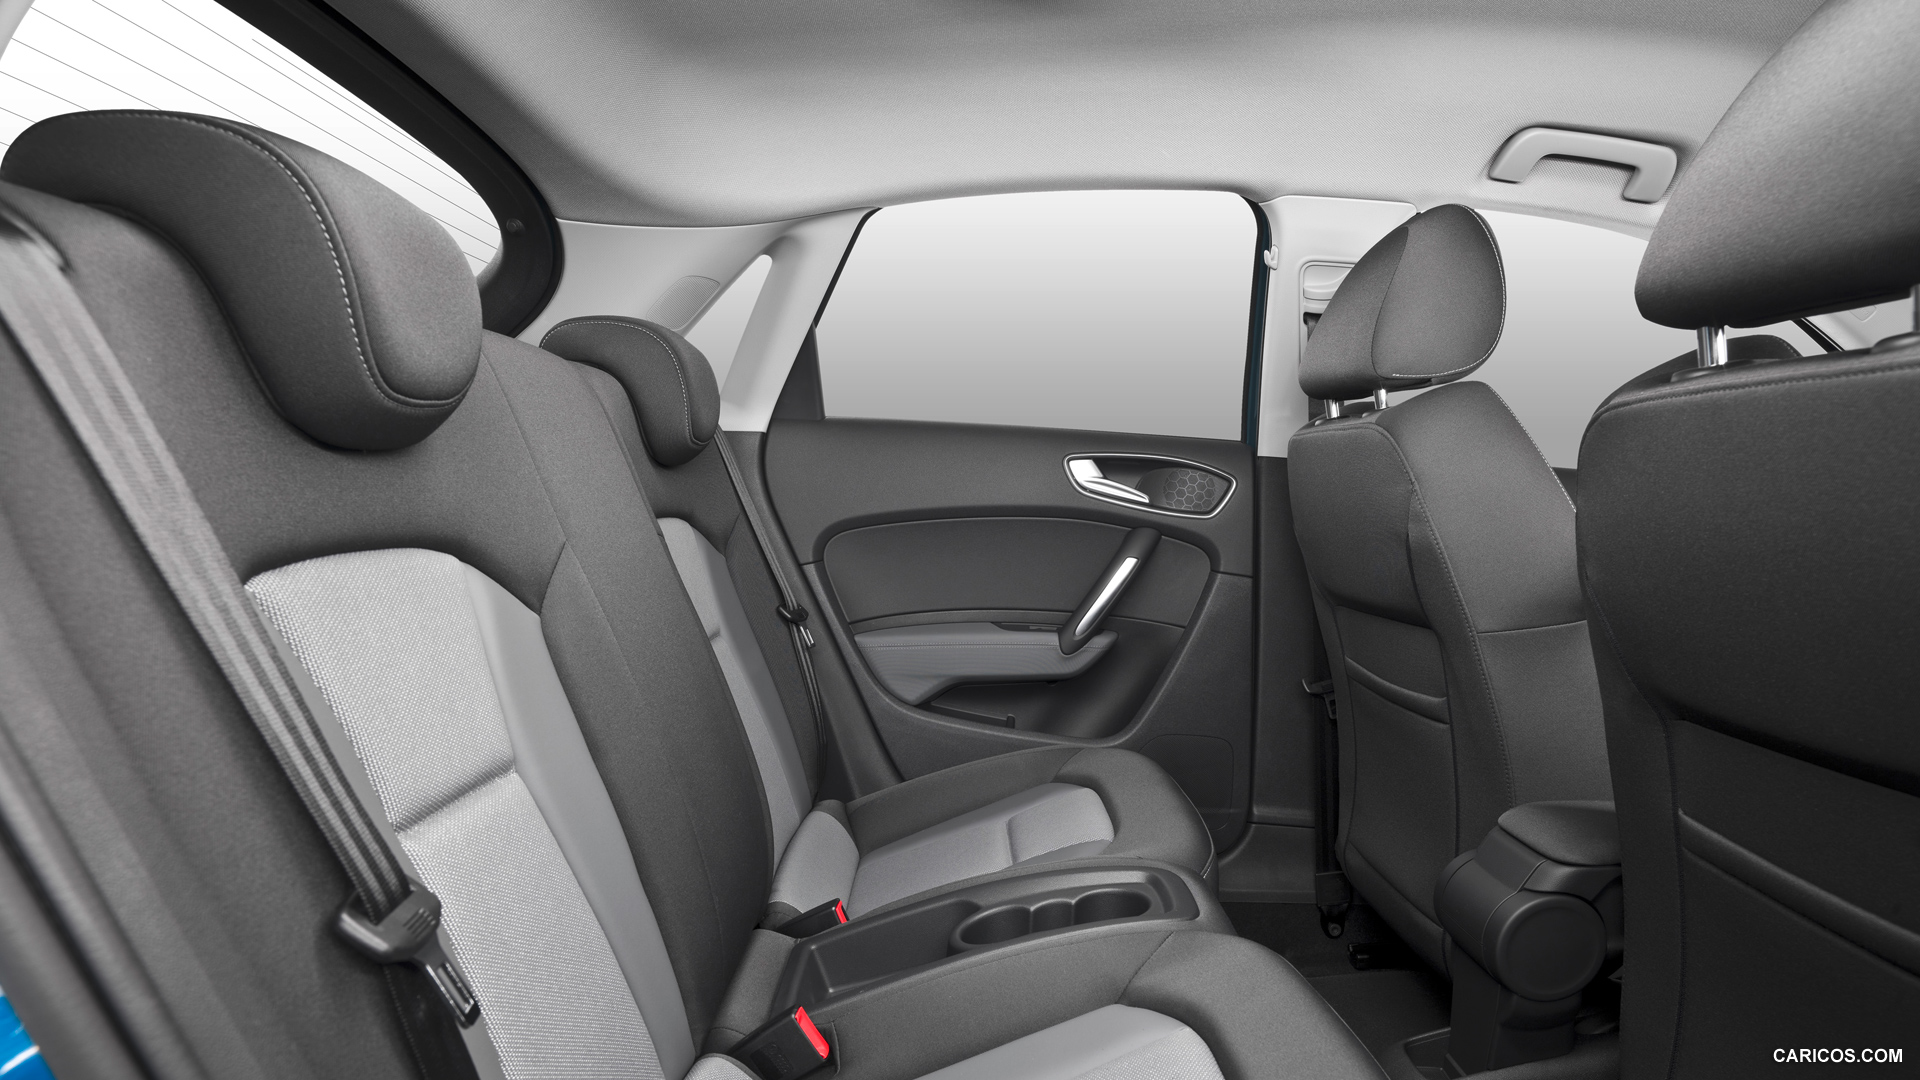 marvelous-design-of-the-grey-and-black-seats-ideas-with-grey-ceiling-as-the-audi-q1-2015-interior-ideas